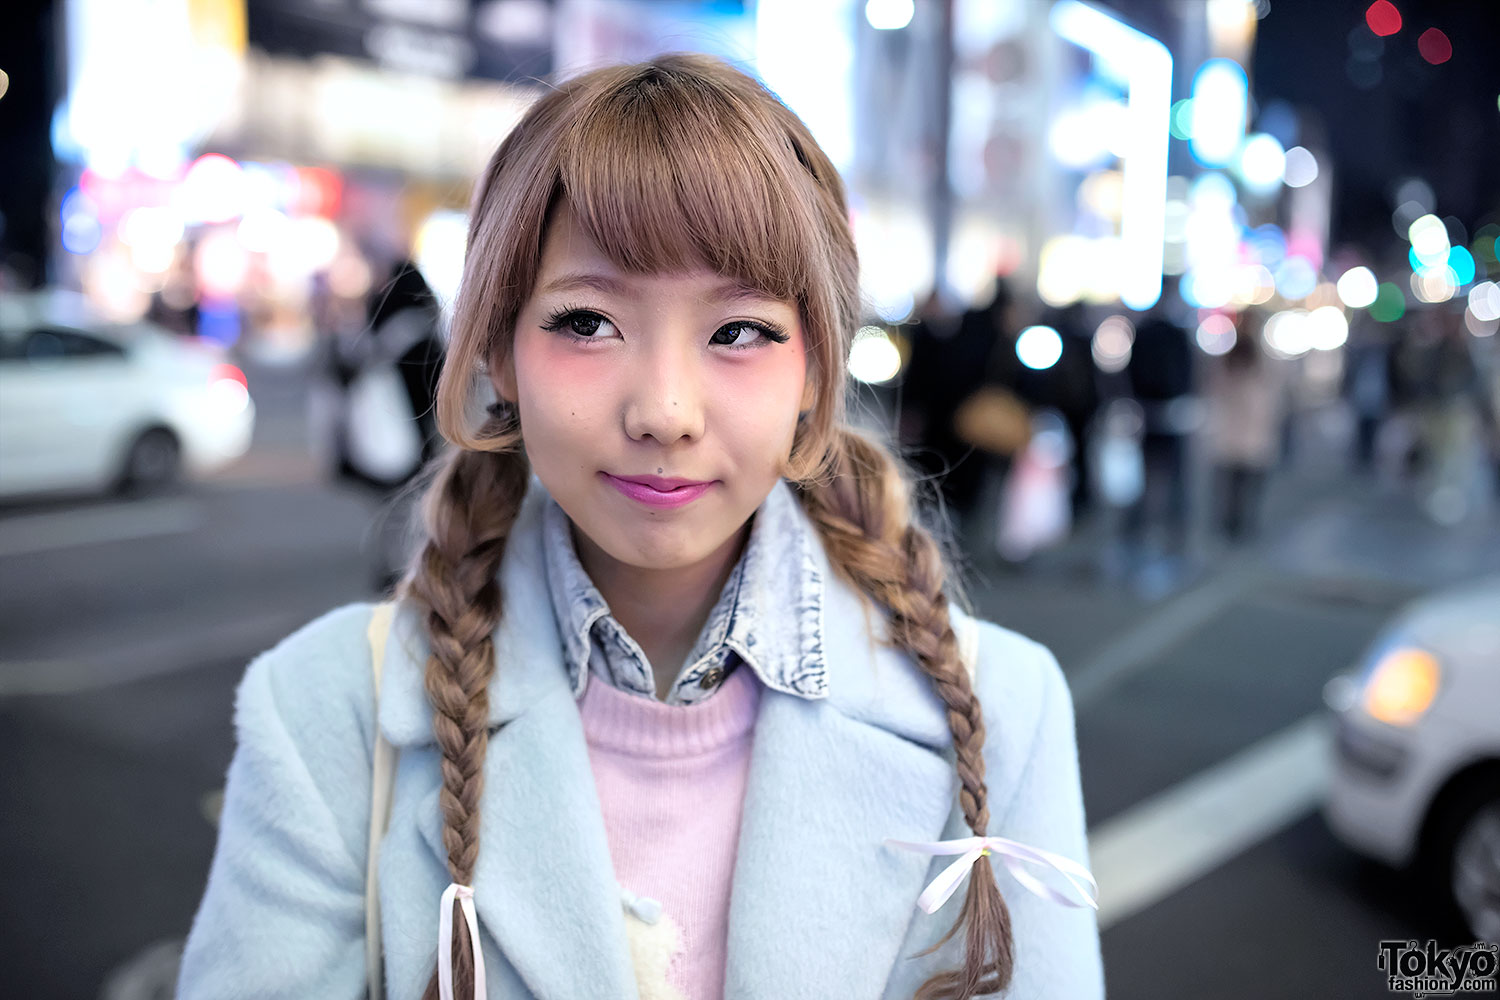 Baby Blue Coat Flying Tiger Bag Amp Twin Braids Hairstyle